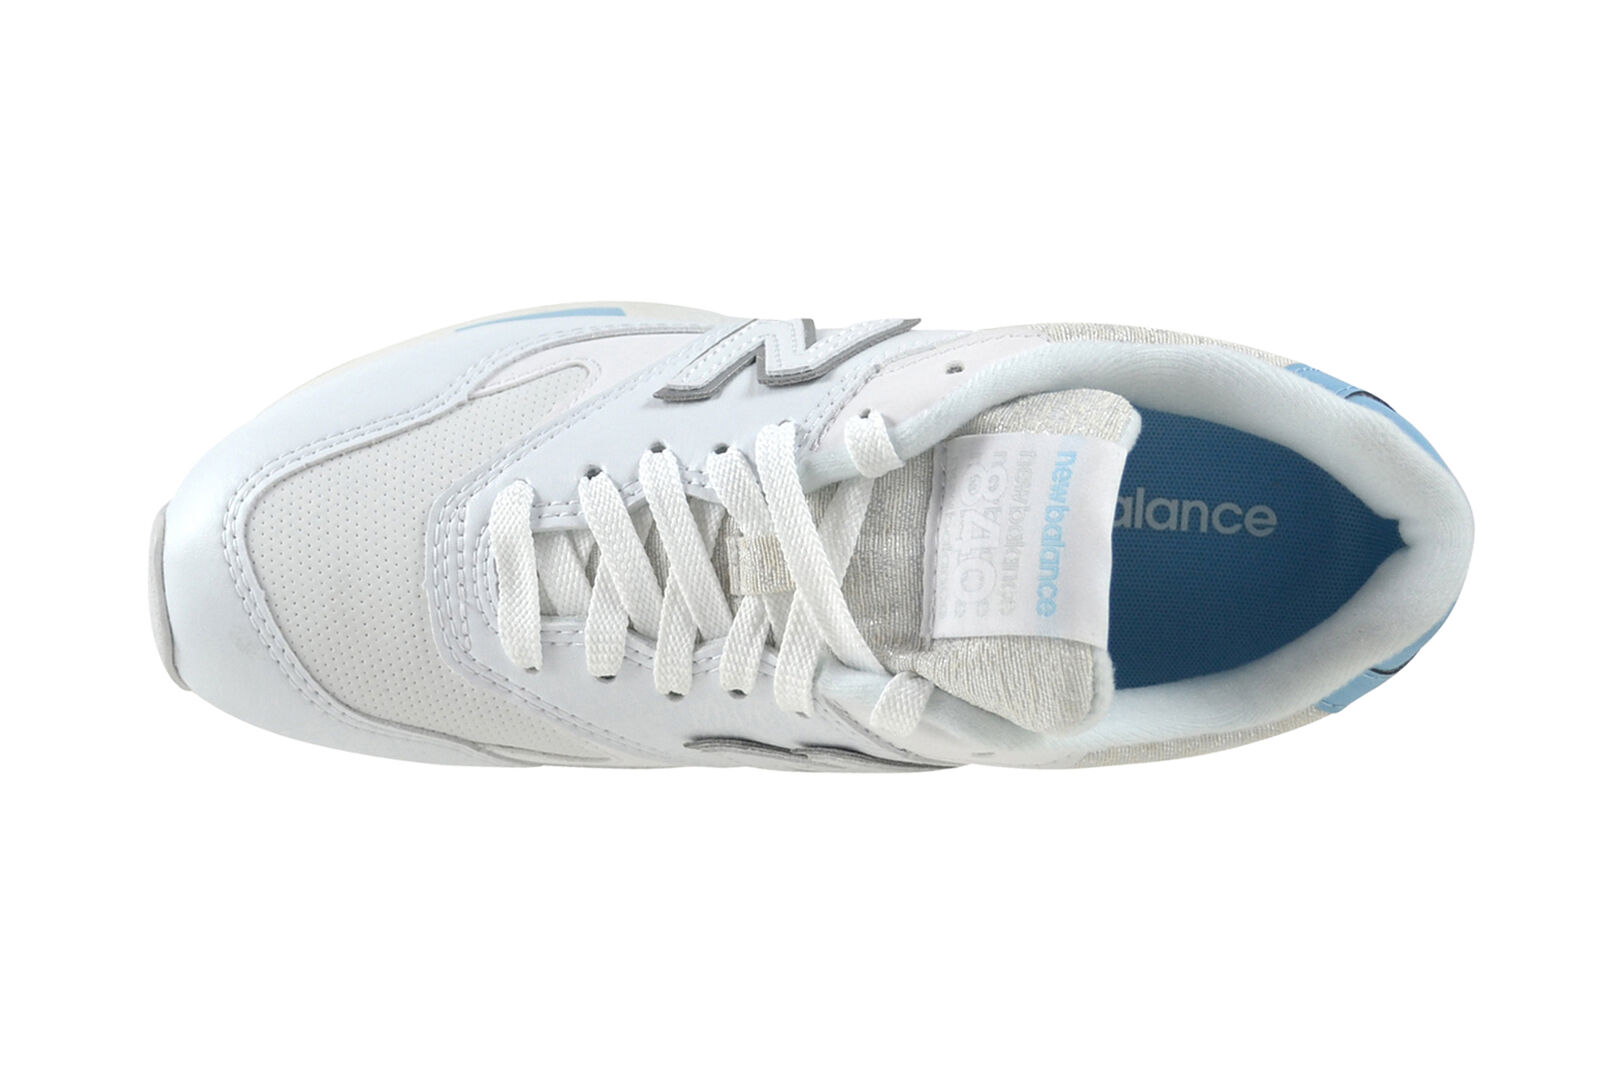 New Balance wl840 WS WS wl840 White Blue Sneaker Chaussures Blanc dca4a4